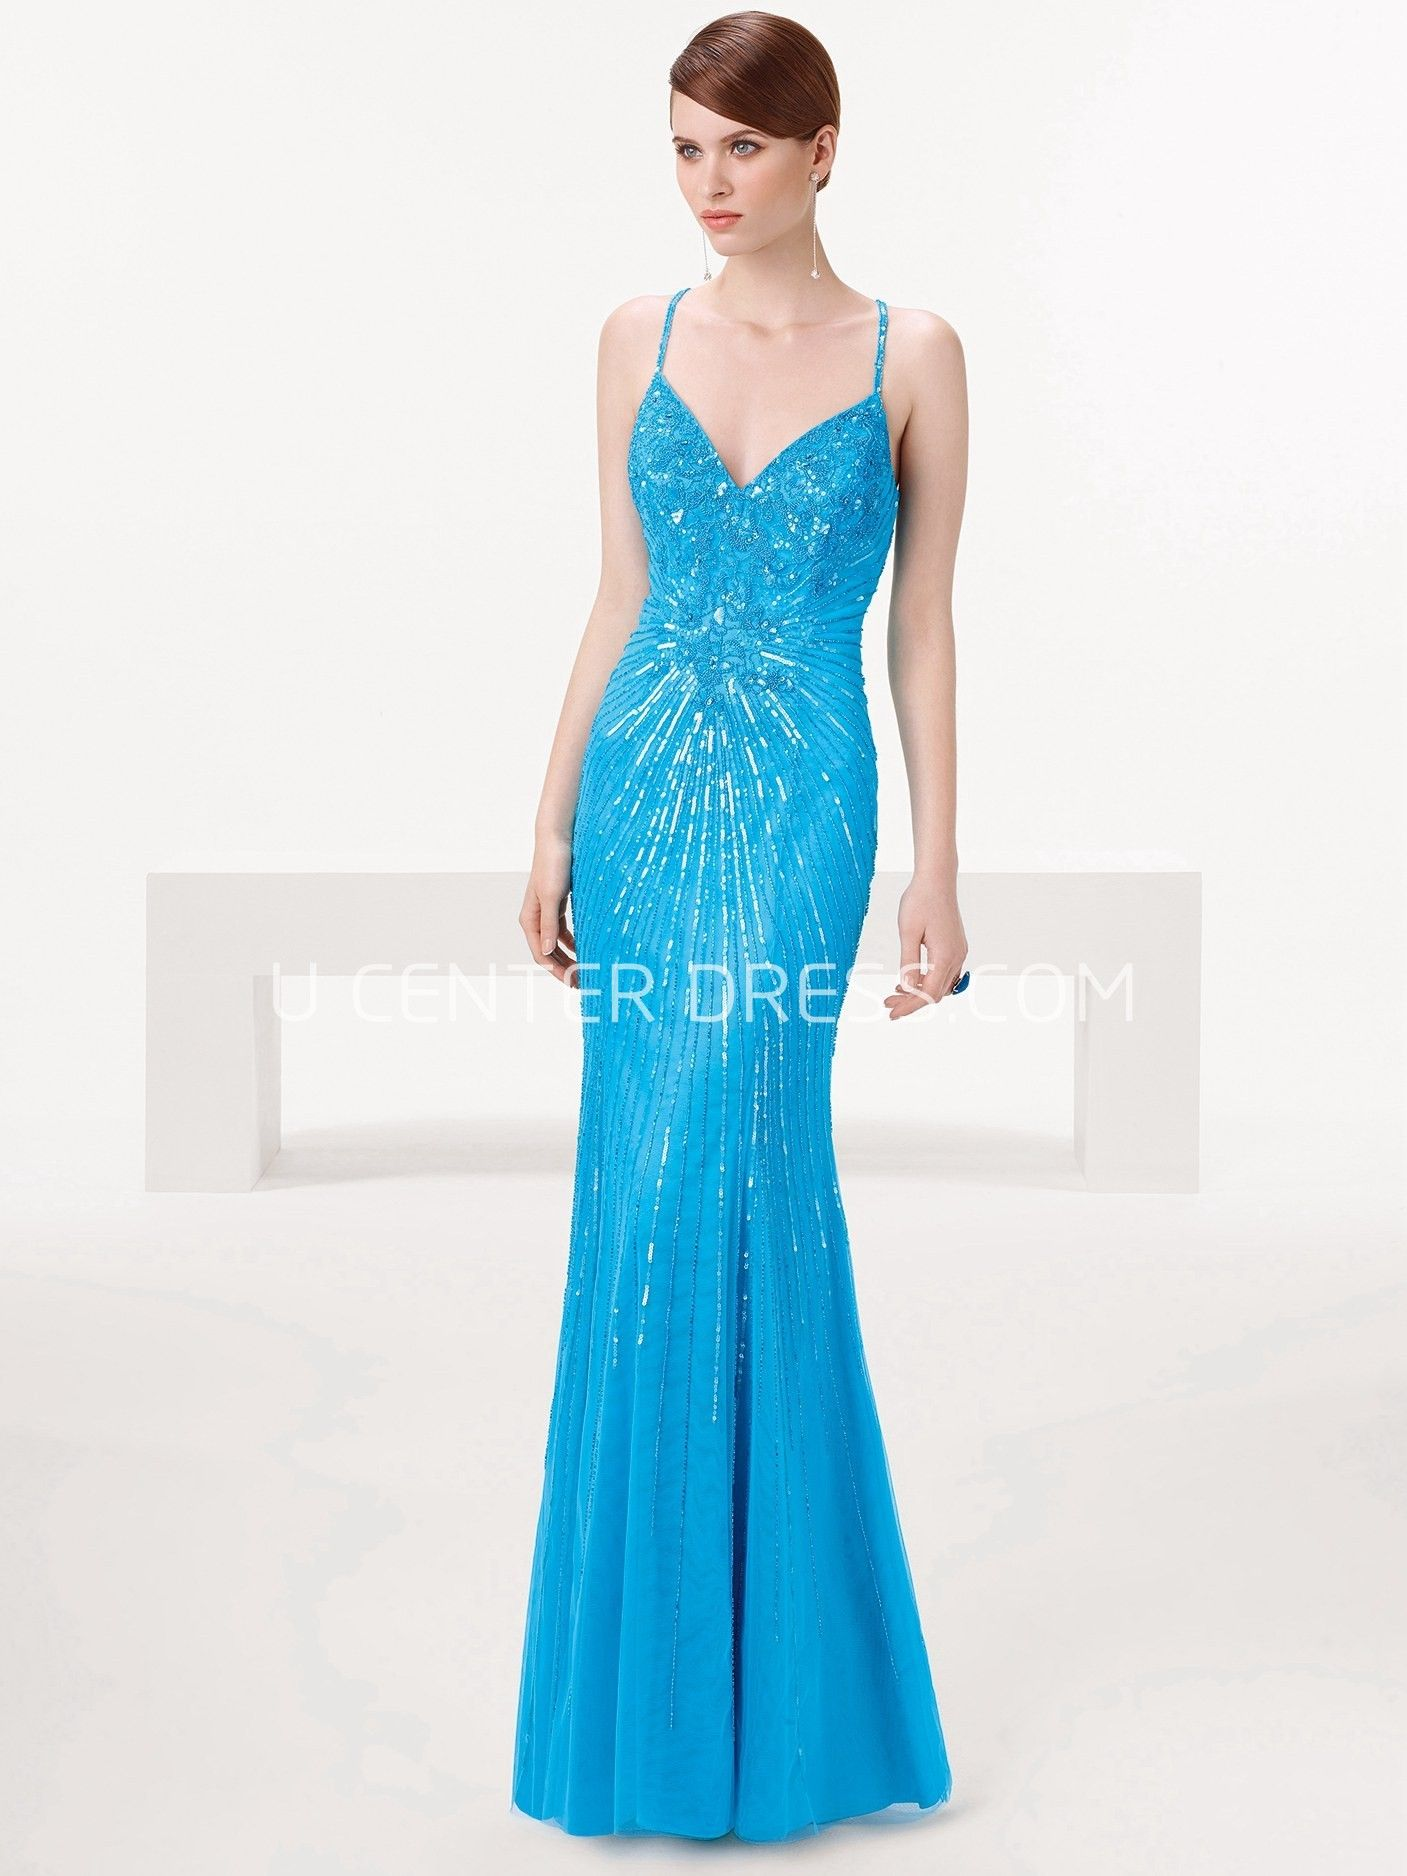 Sheath Sleeveless Spaghetti Maxi Sequins Prom Dress | Sequin prom ...